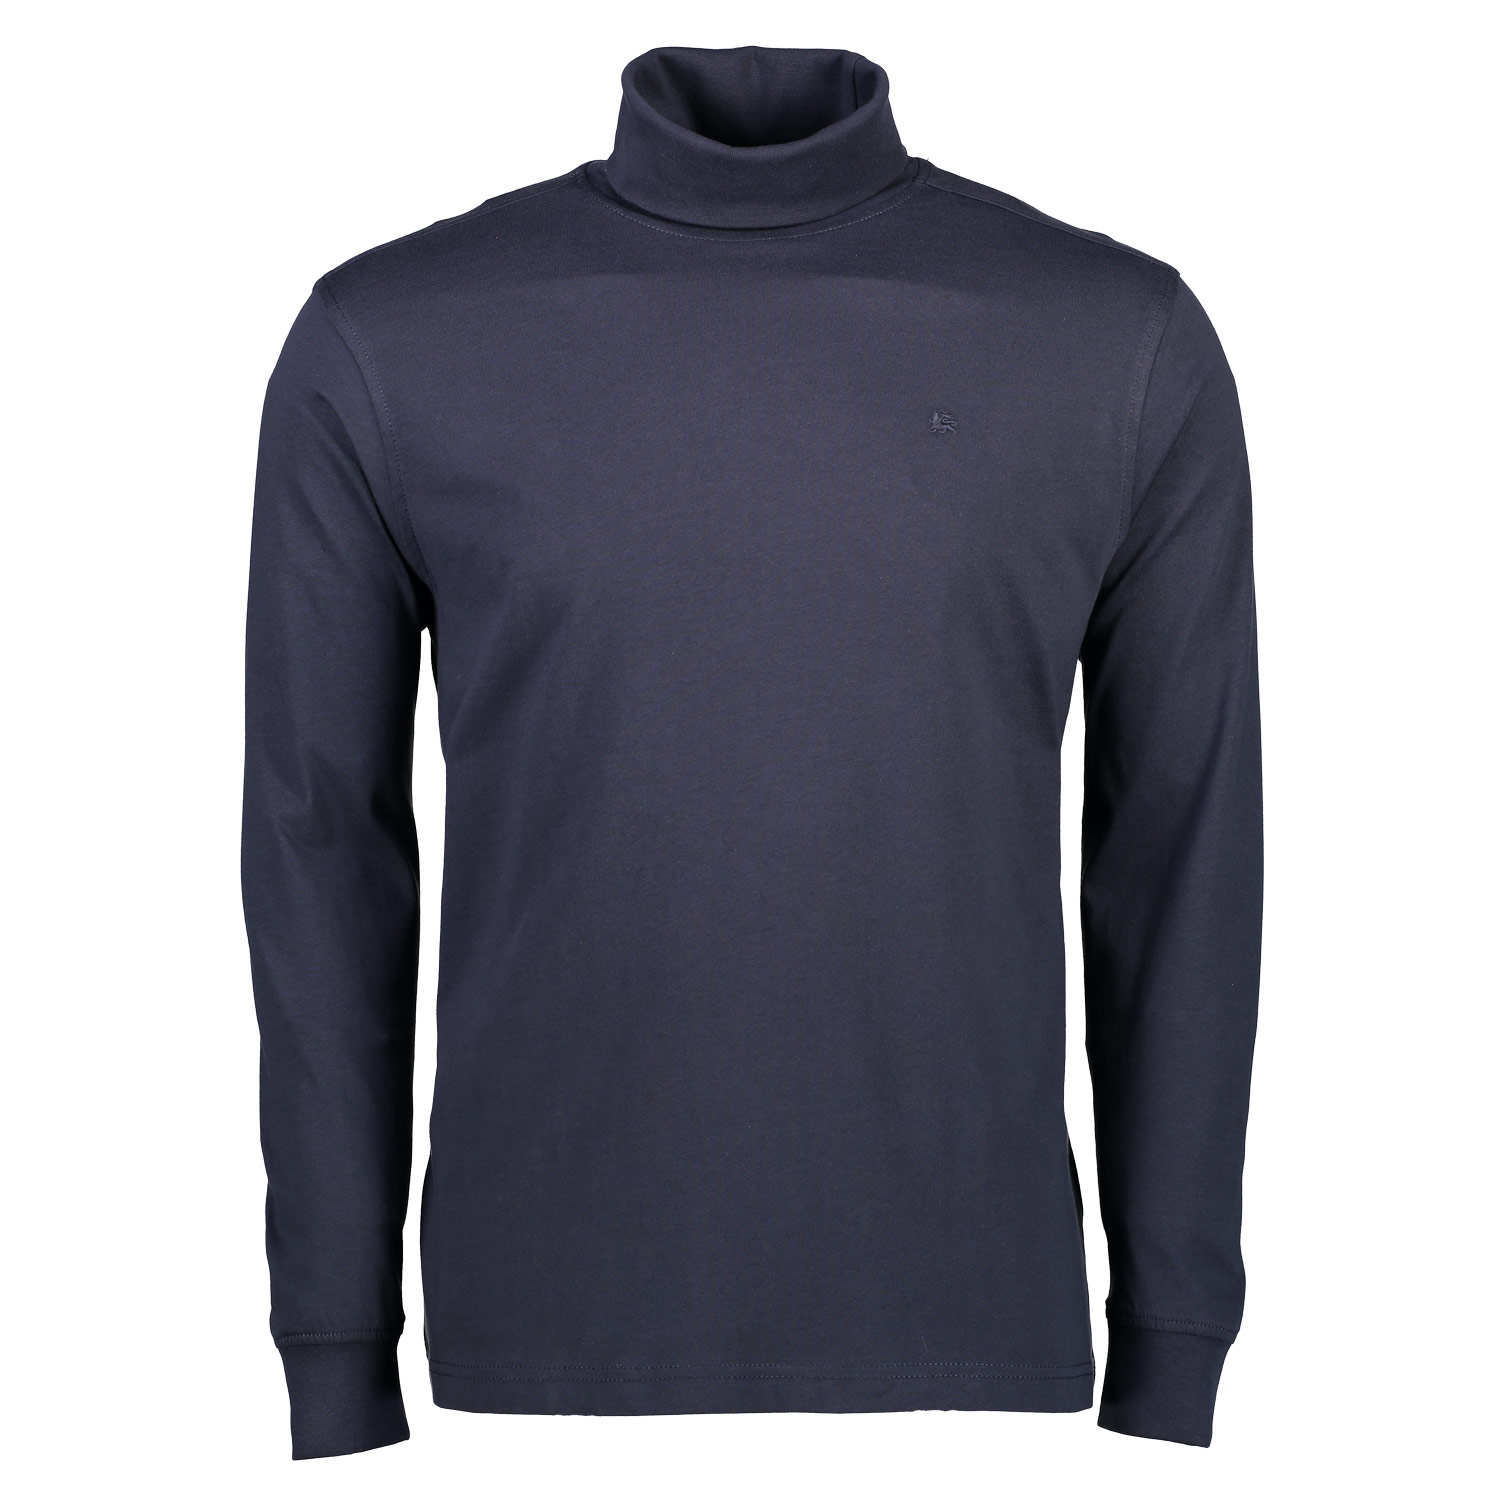 colorpic-NAVY